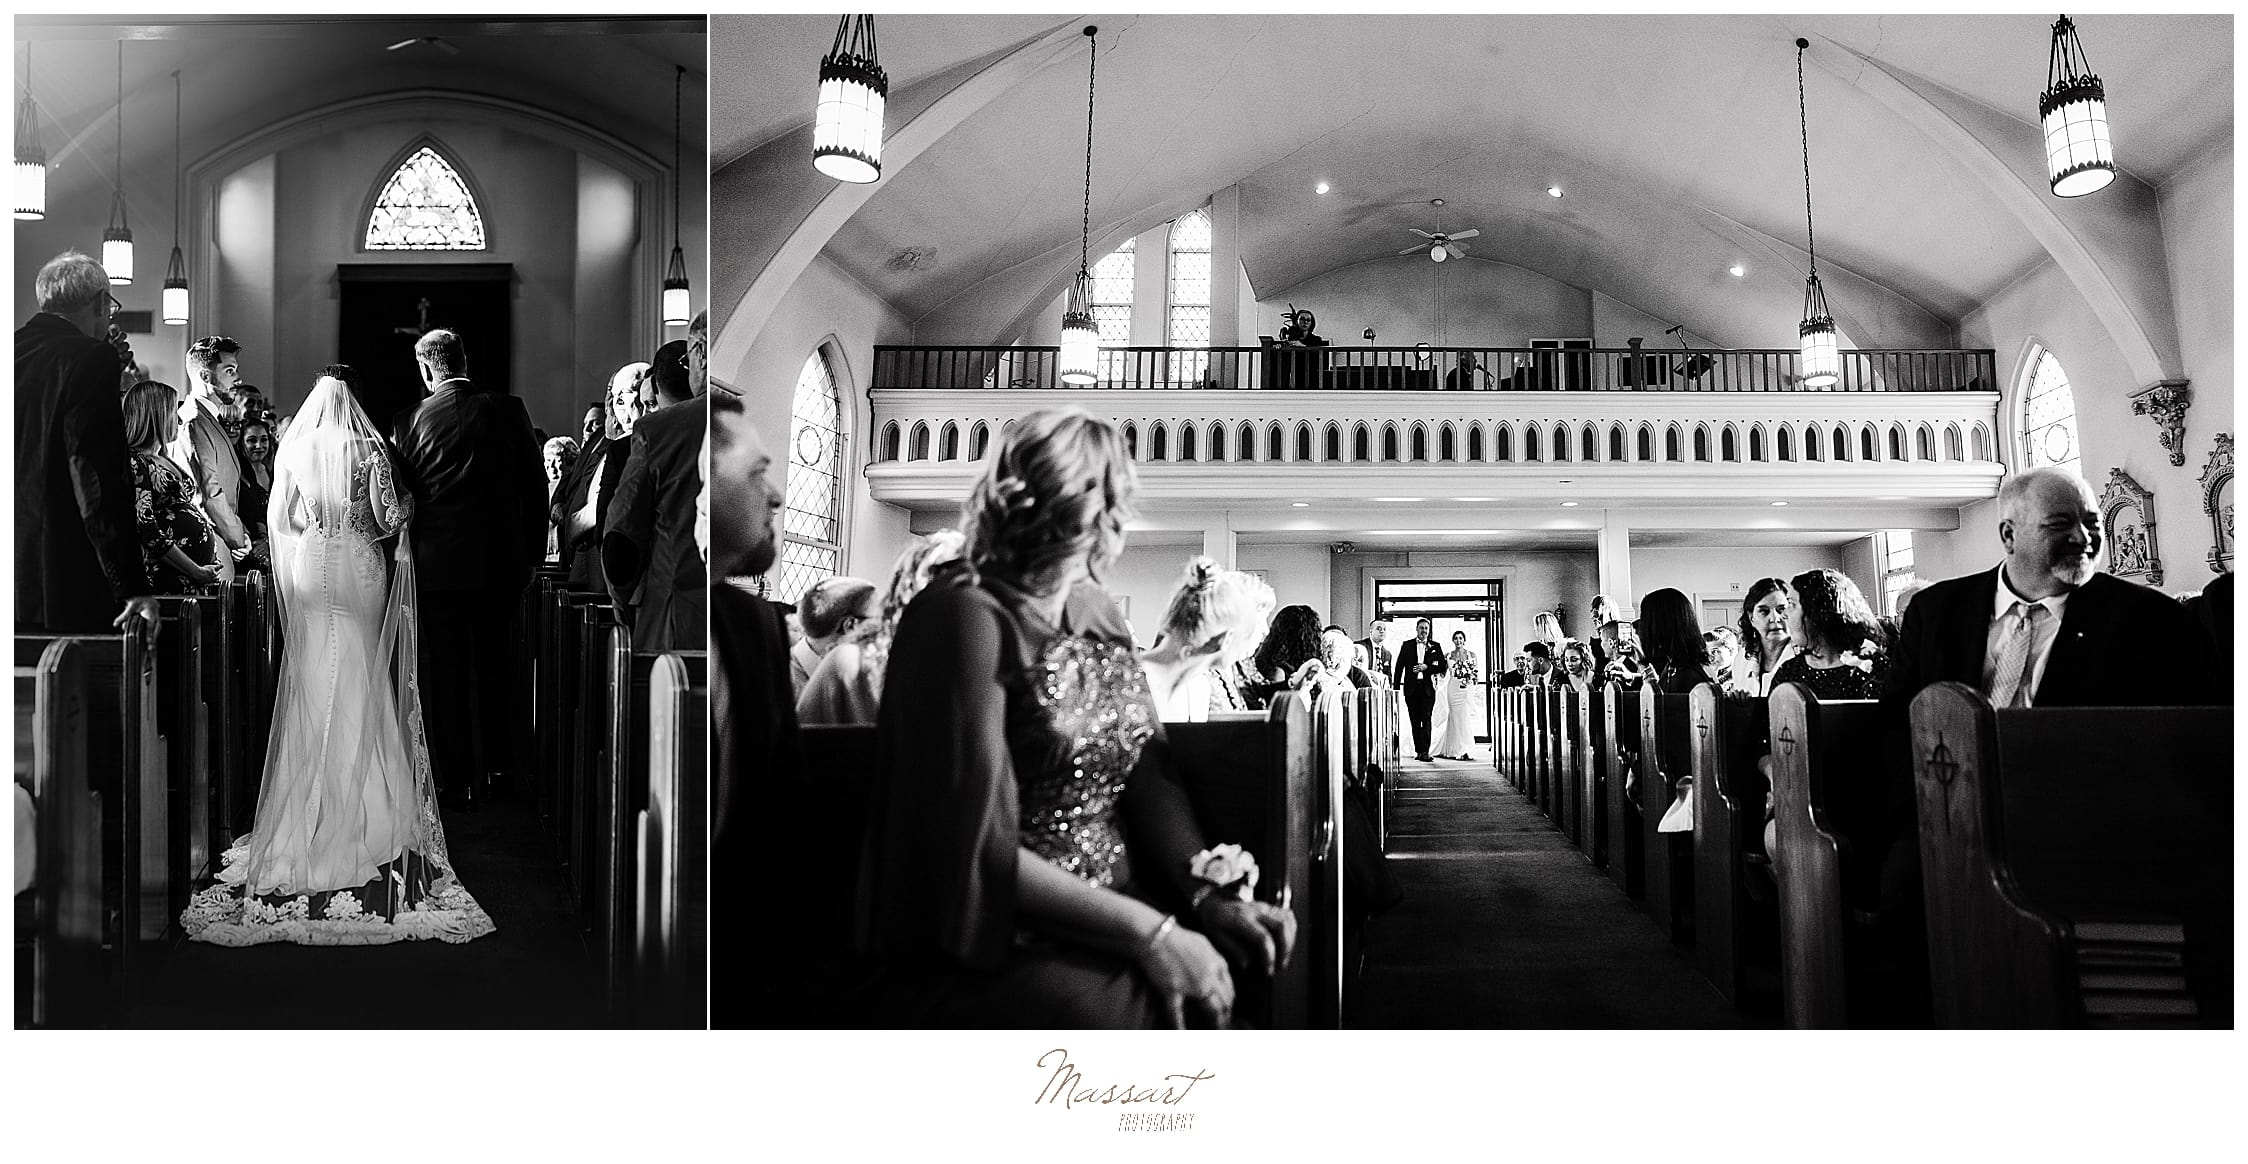 wedding ceremony in MA photographed by Massart Photography